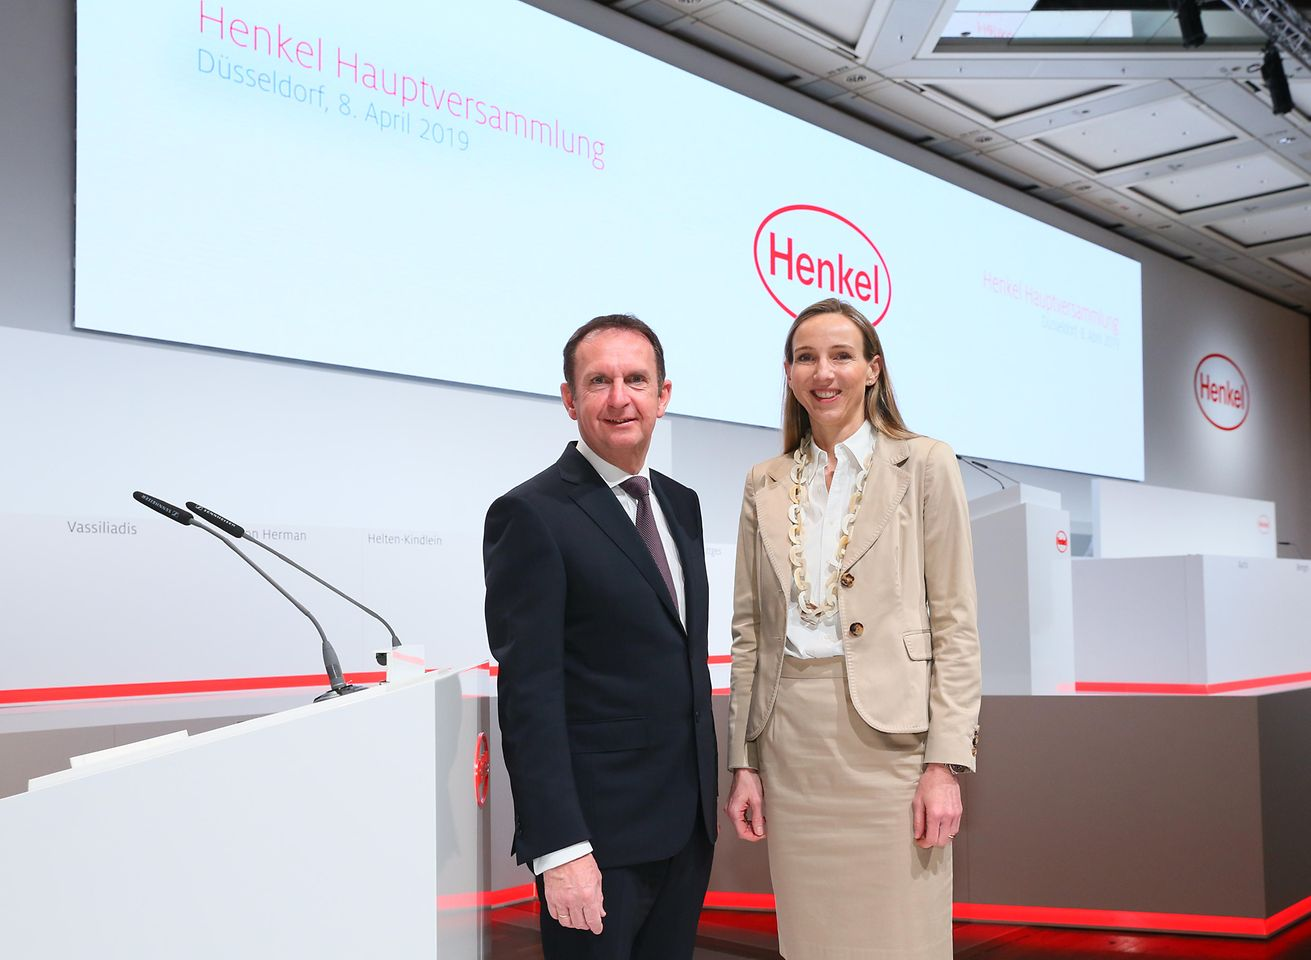 Henkel CEO Hans Van Bylen and Dr. Simone Bagel-Trah, Chairwoman of the Shareholders' Committee and Supervisory Board